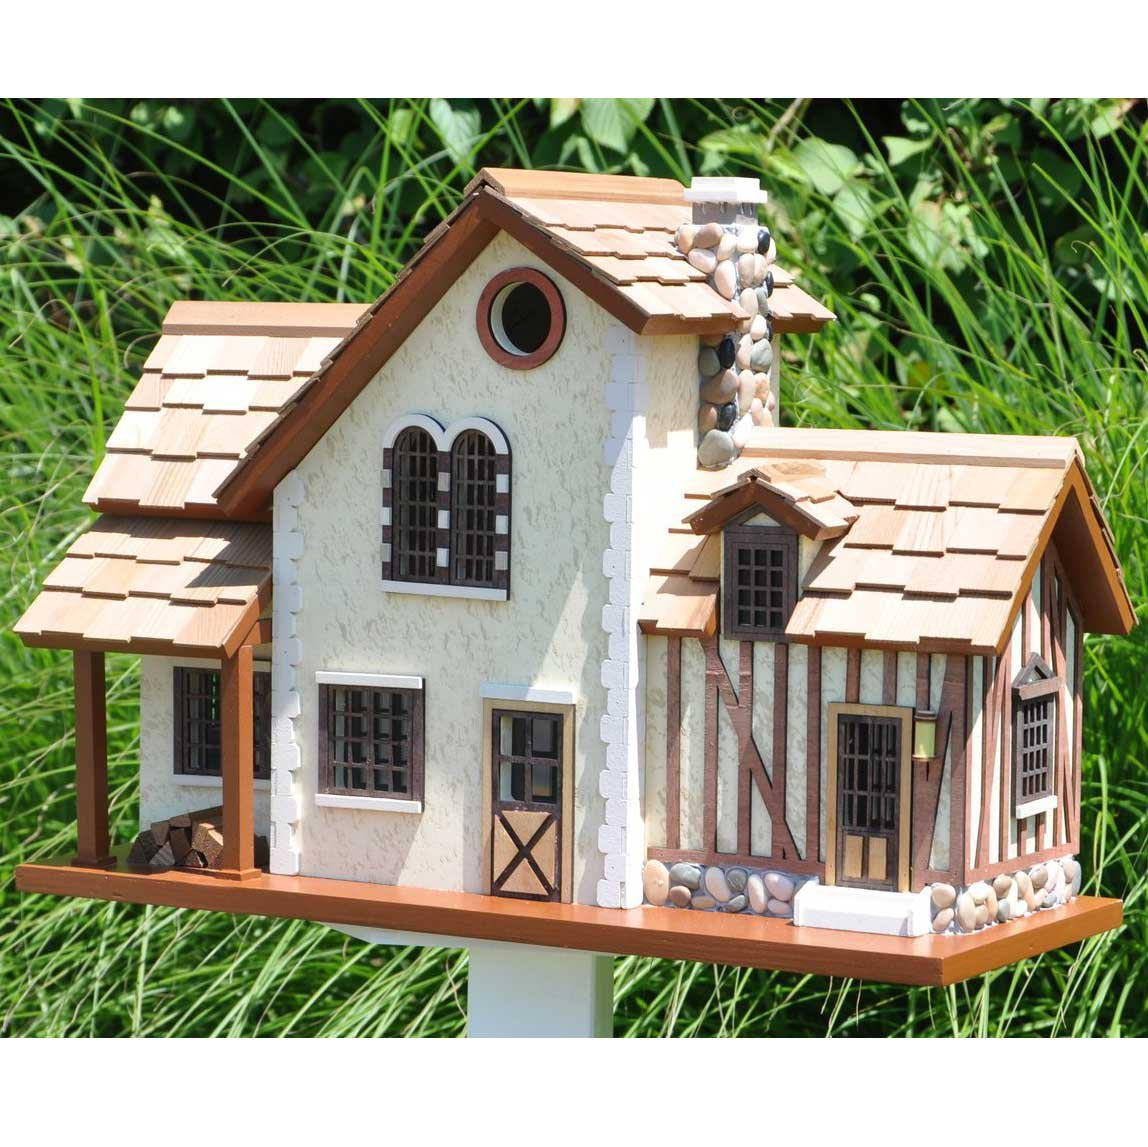 Decorative Bird Houses for Inside